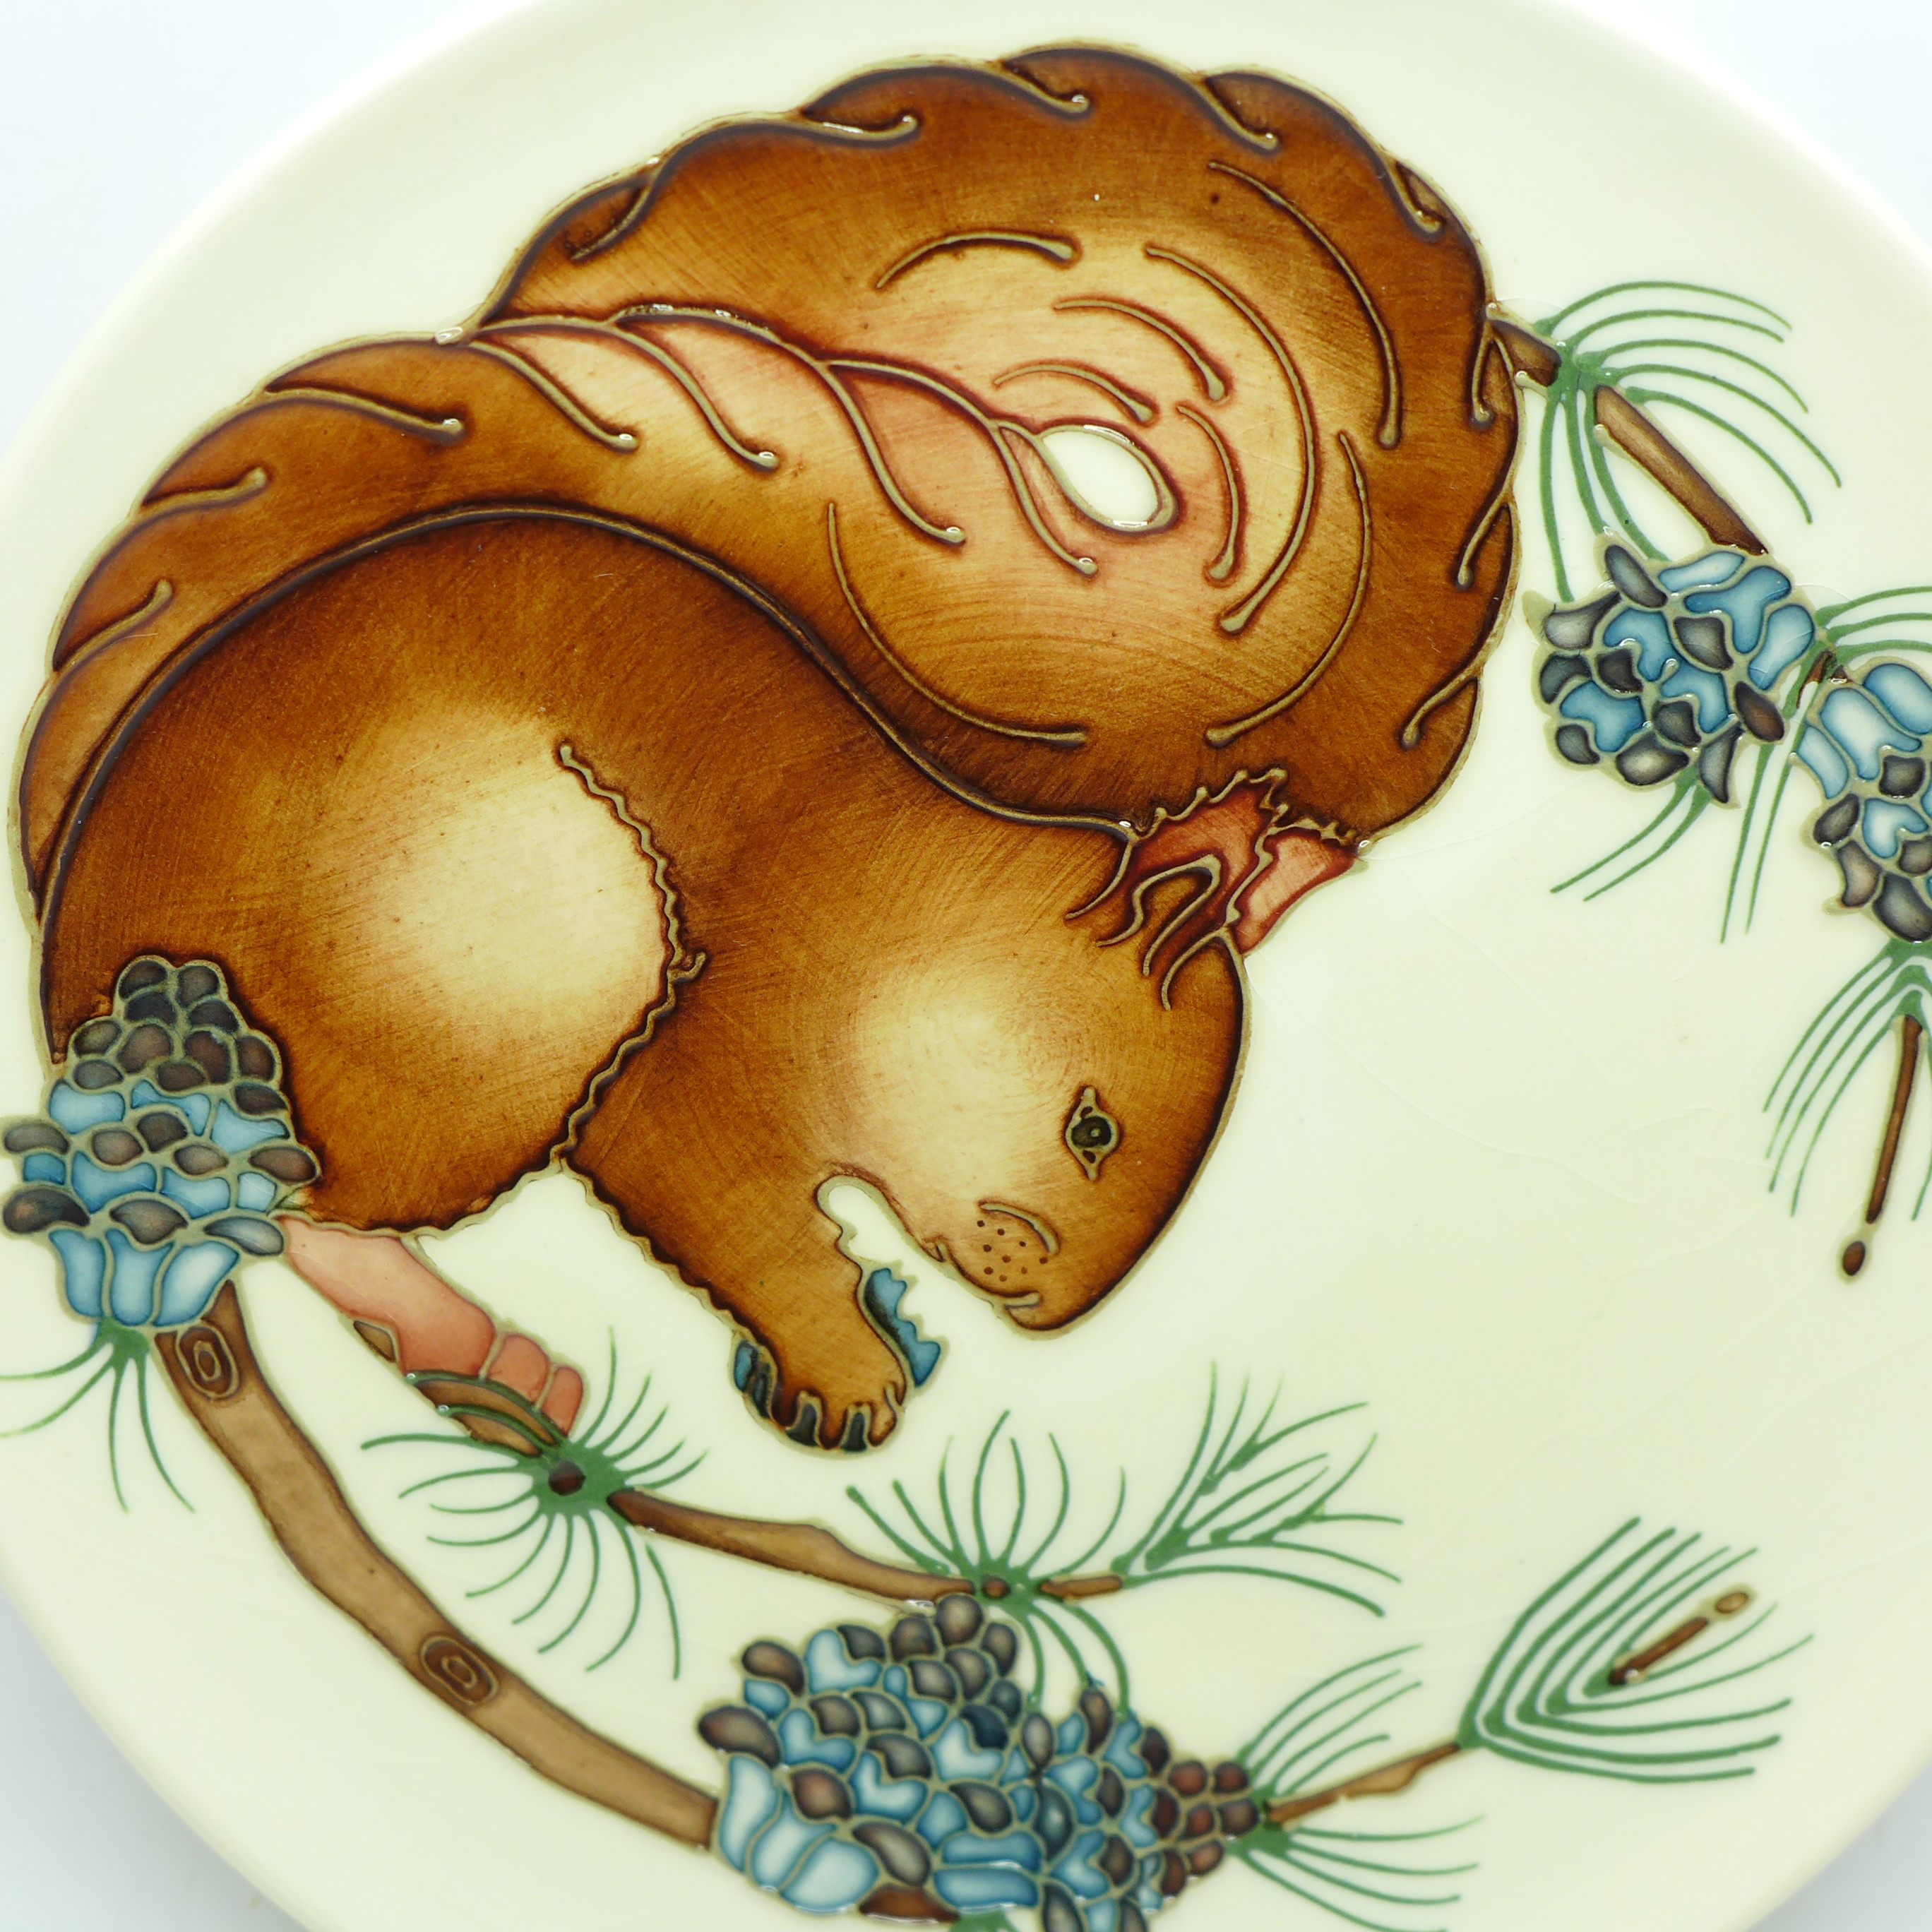 A Moorcroft Limited Edition Year Plate 1995, squirrel design, 300/500, signed and dated 4.11.95, - Image 2 of 6